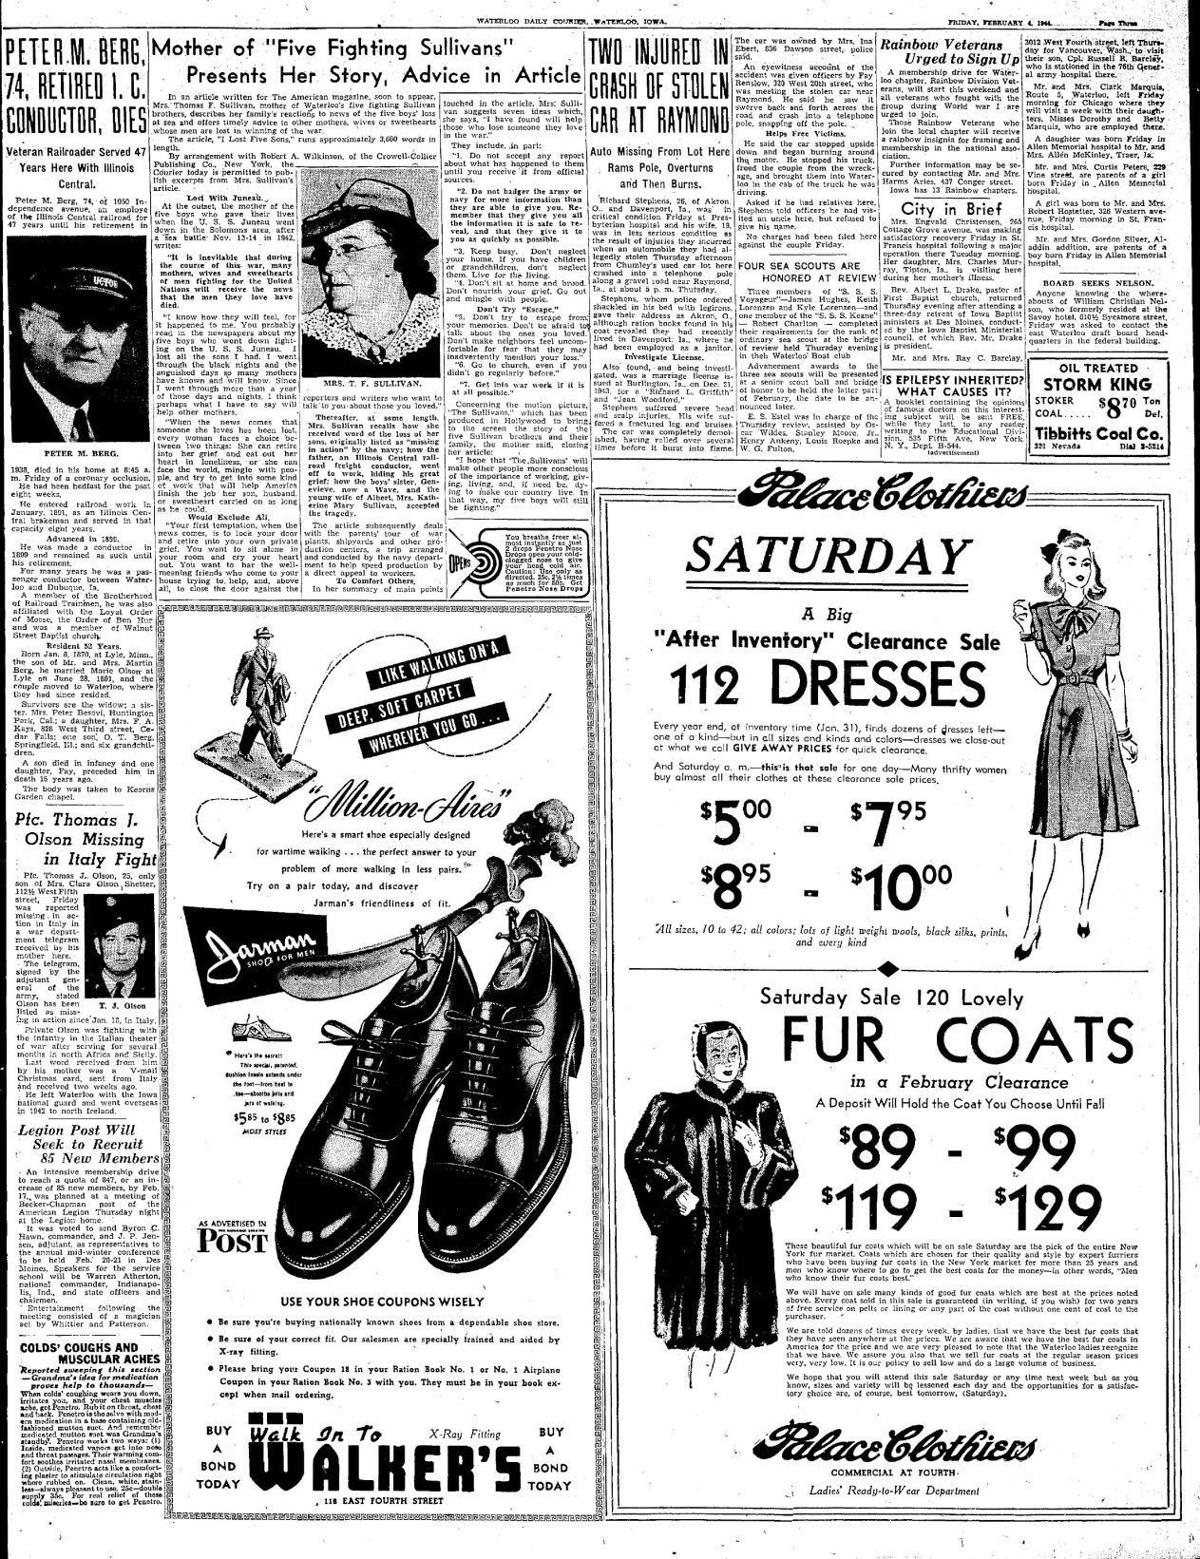 Courier Feb. 4, 1944